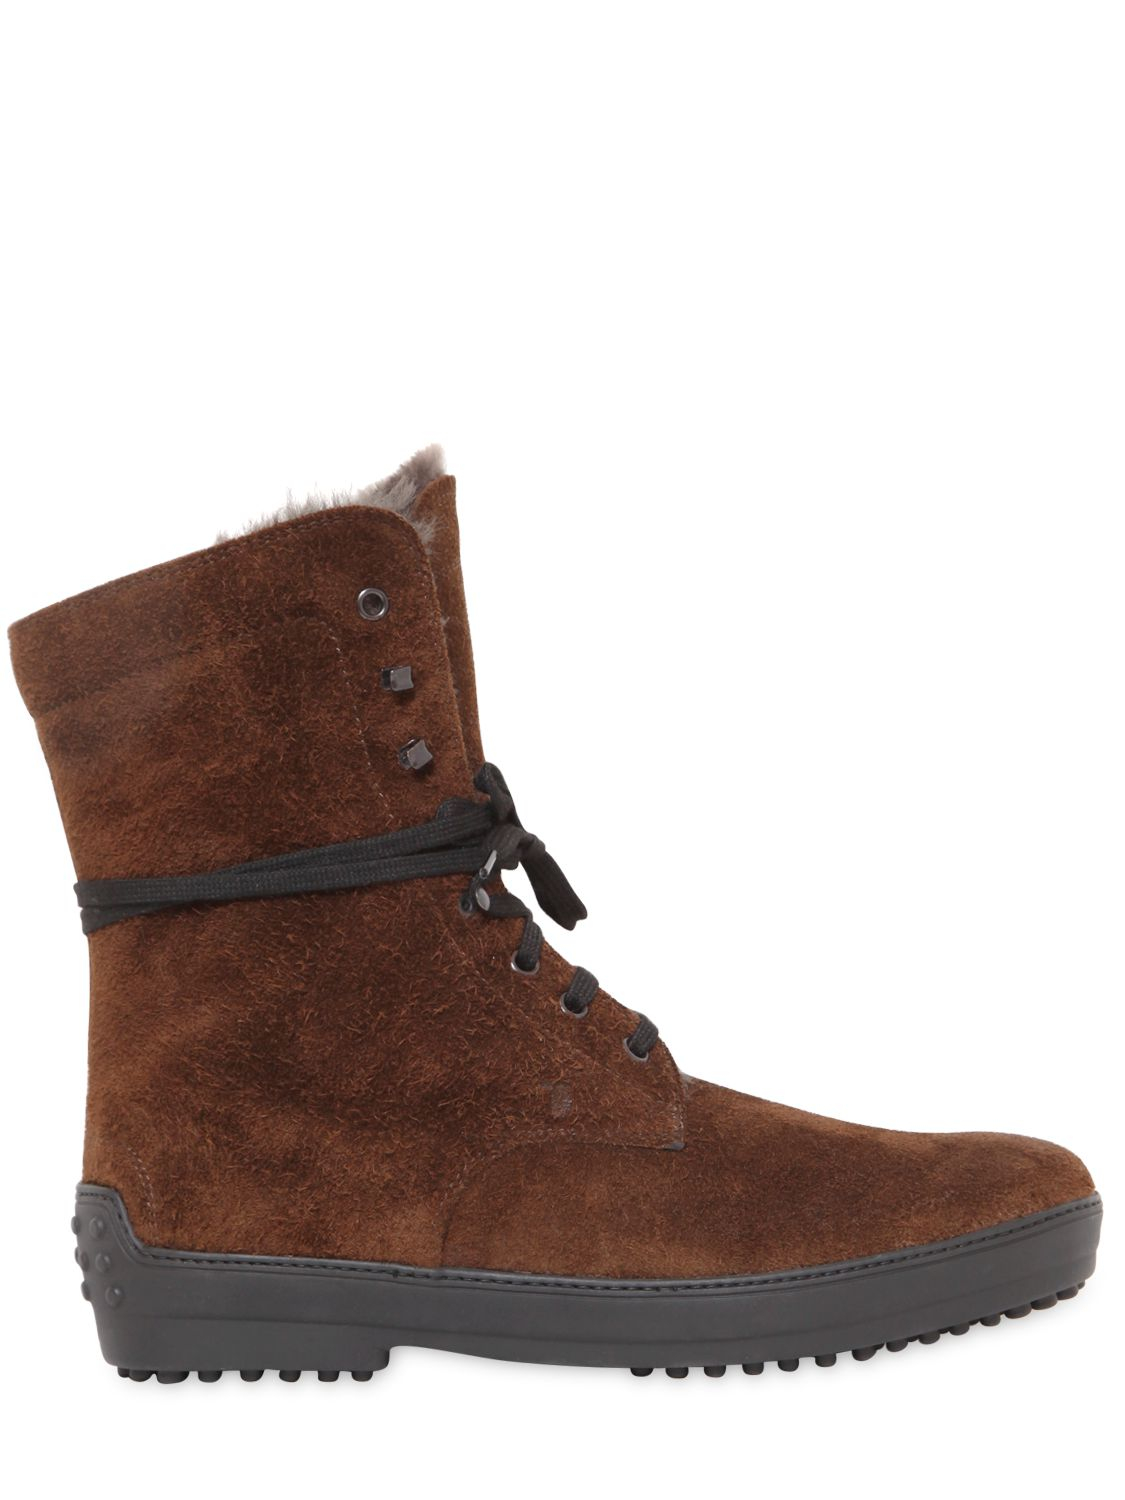 Mens Wrinkled Leather Lace-Up Boots Tod's jQGElZ